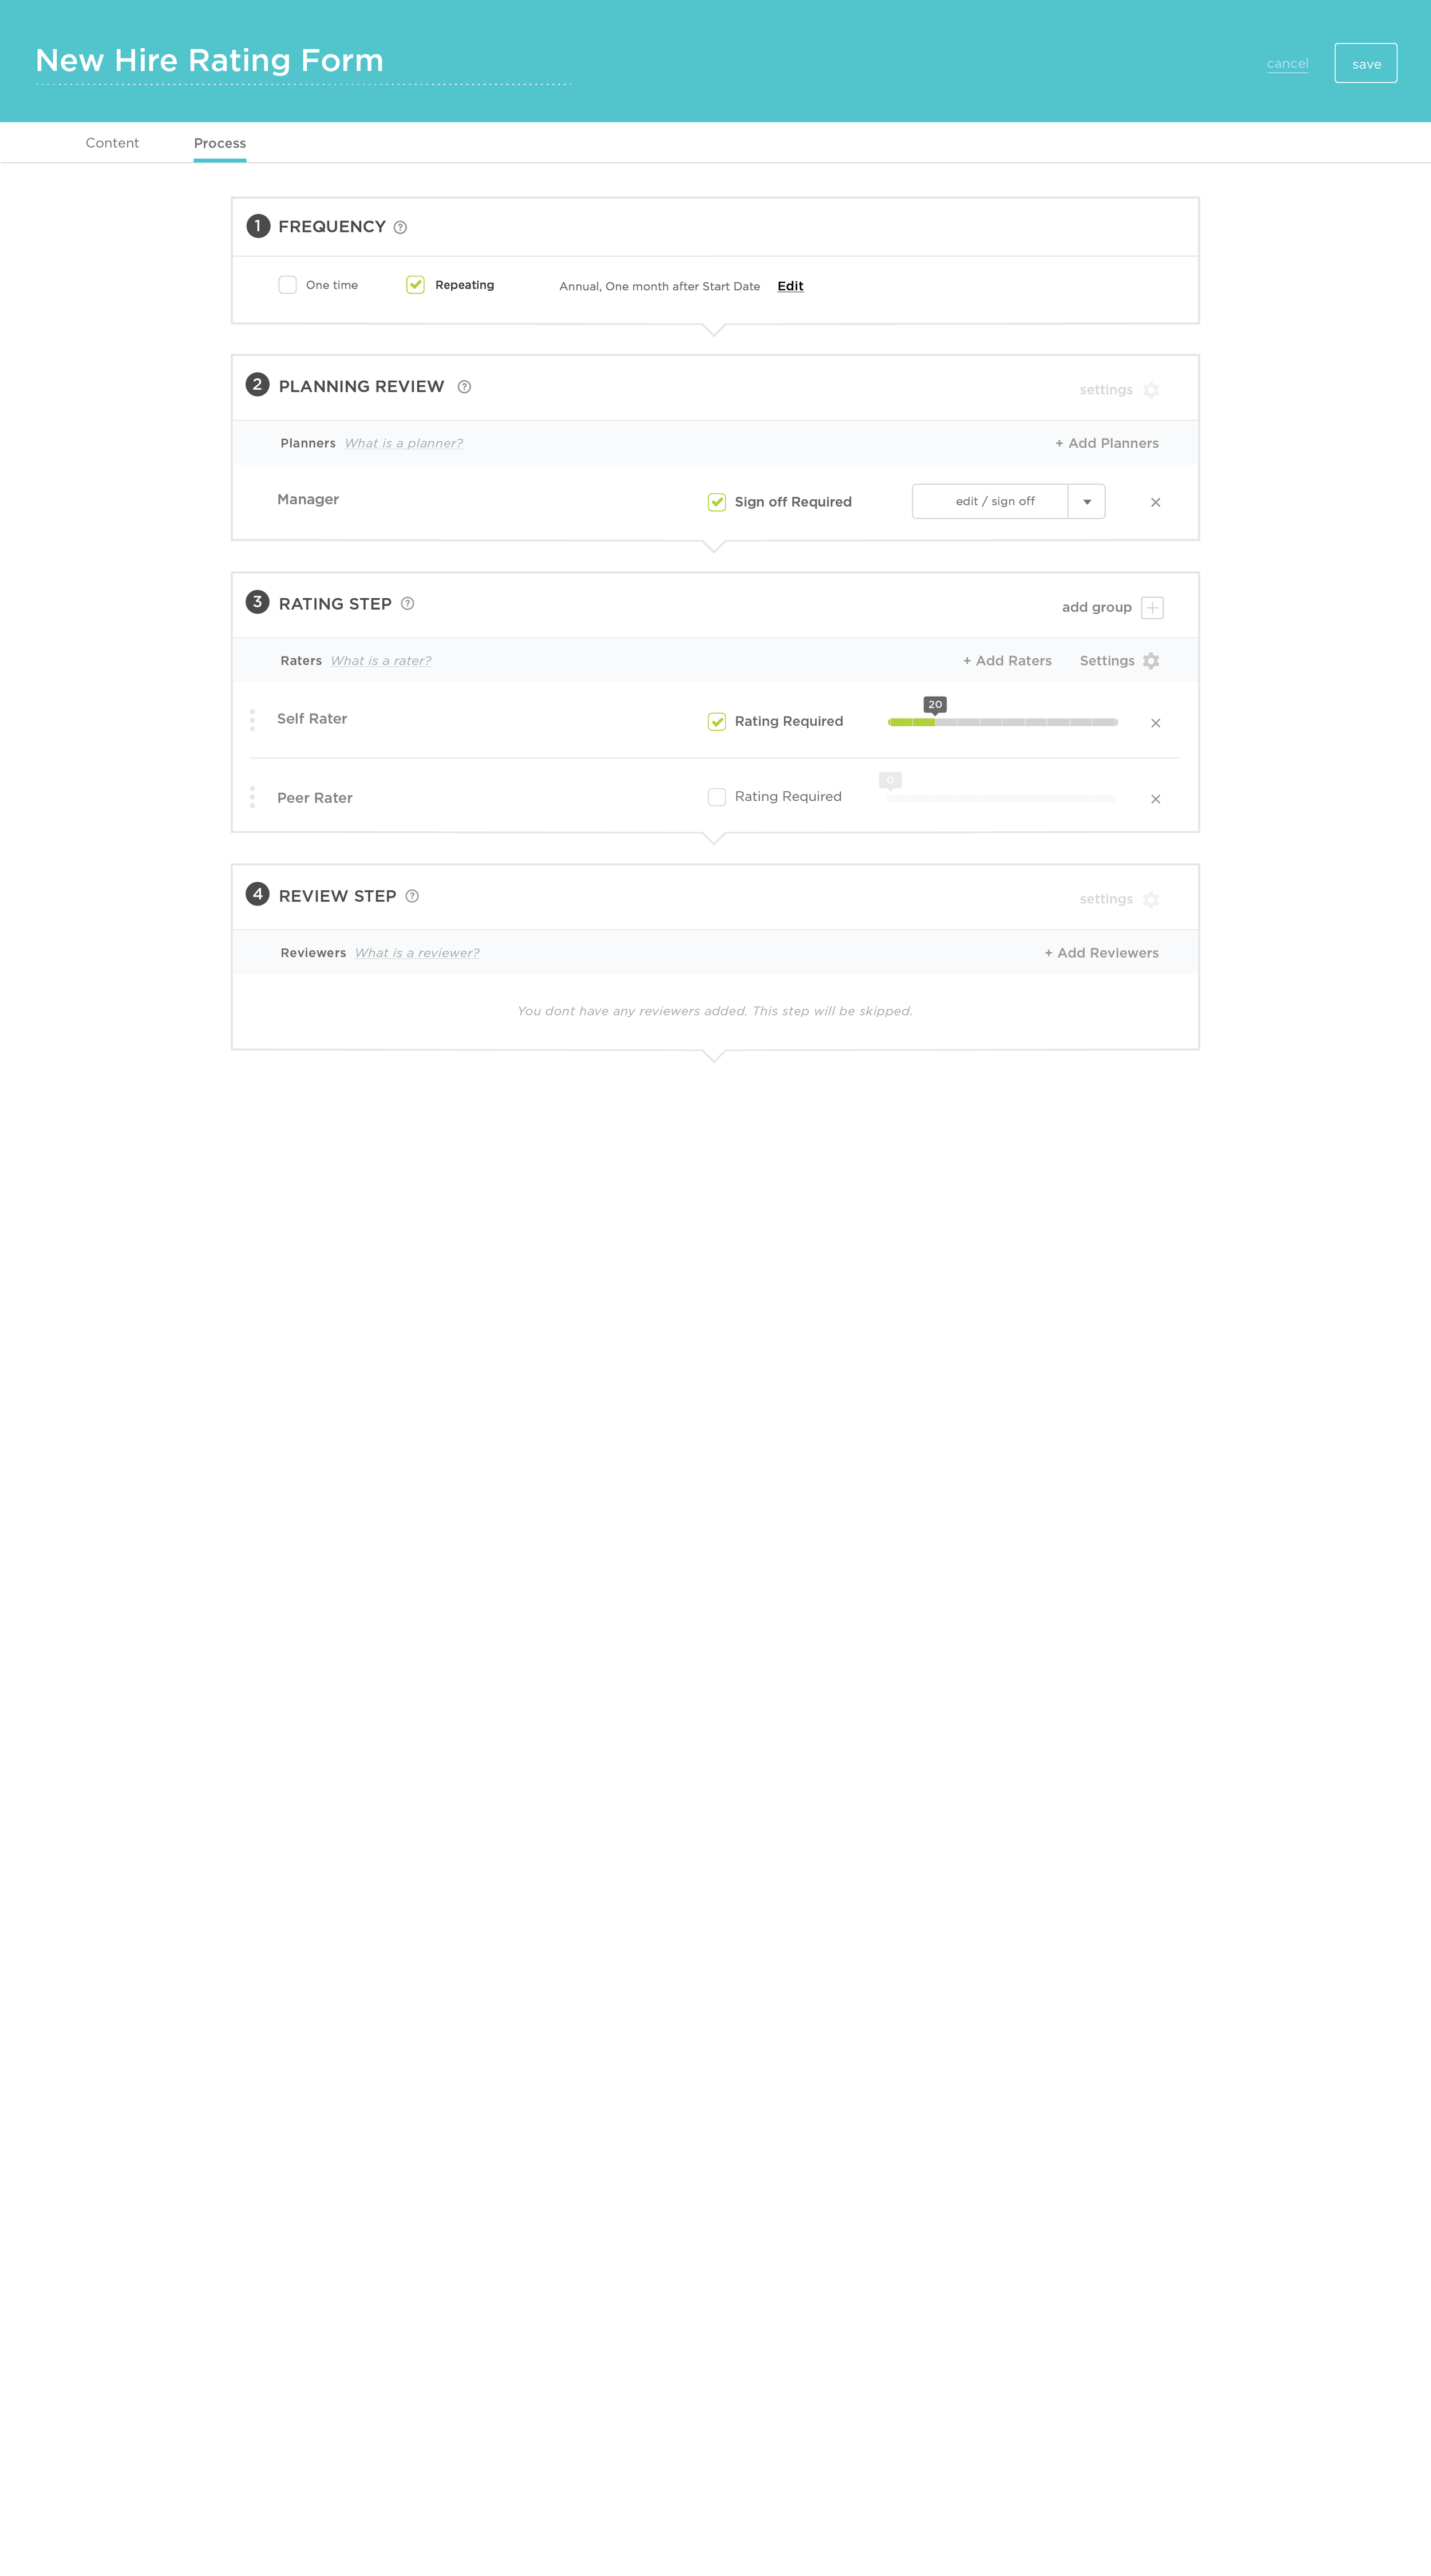 Invision_Pe_rating-form-process_03_13.png